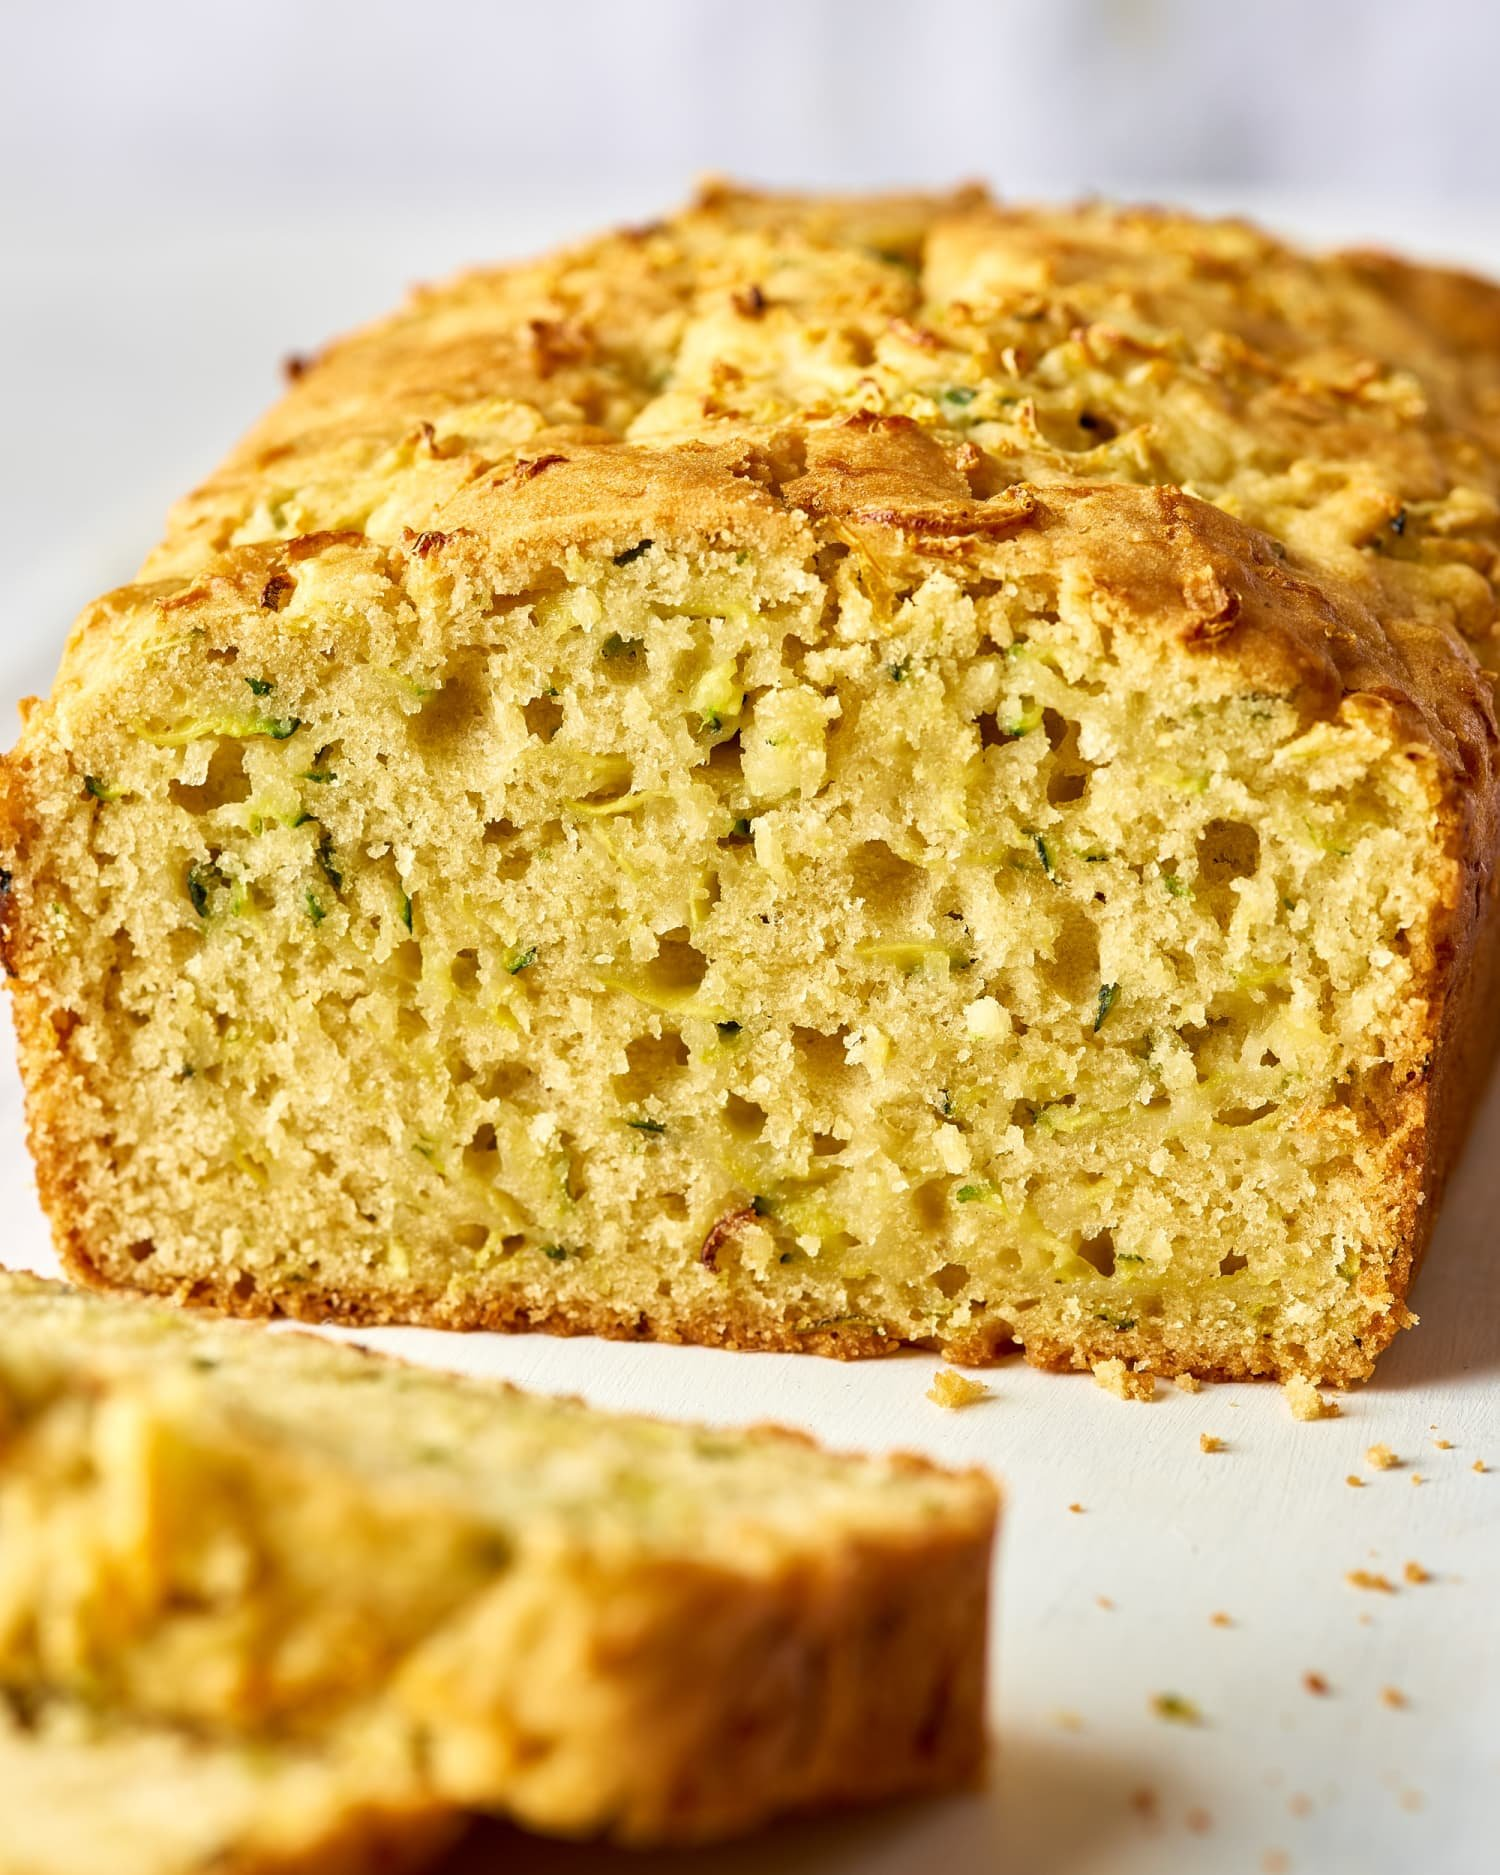 How To Make Easy, Soft Zucchini Bread